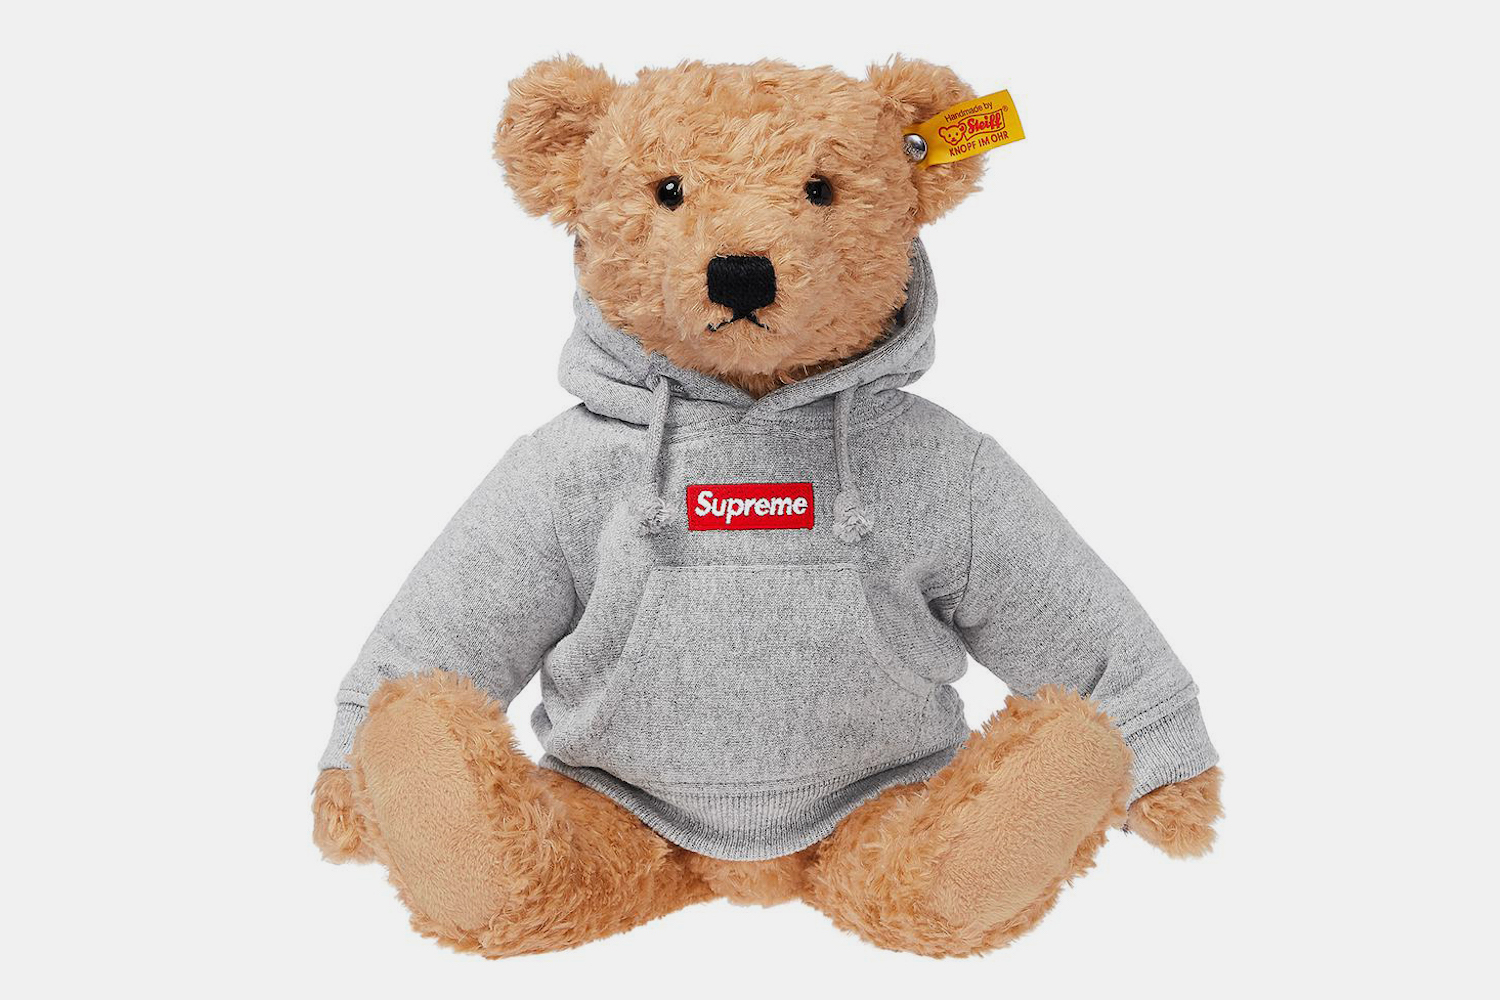 65893deb28 As with any Supreme collection, the brand's accessories line tends to  garner more of the spotlight, as we even accumulated the 50 greatest  Supreme ...